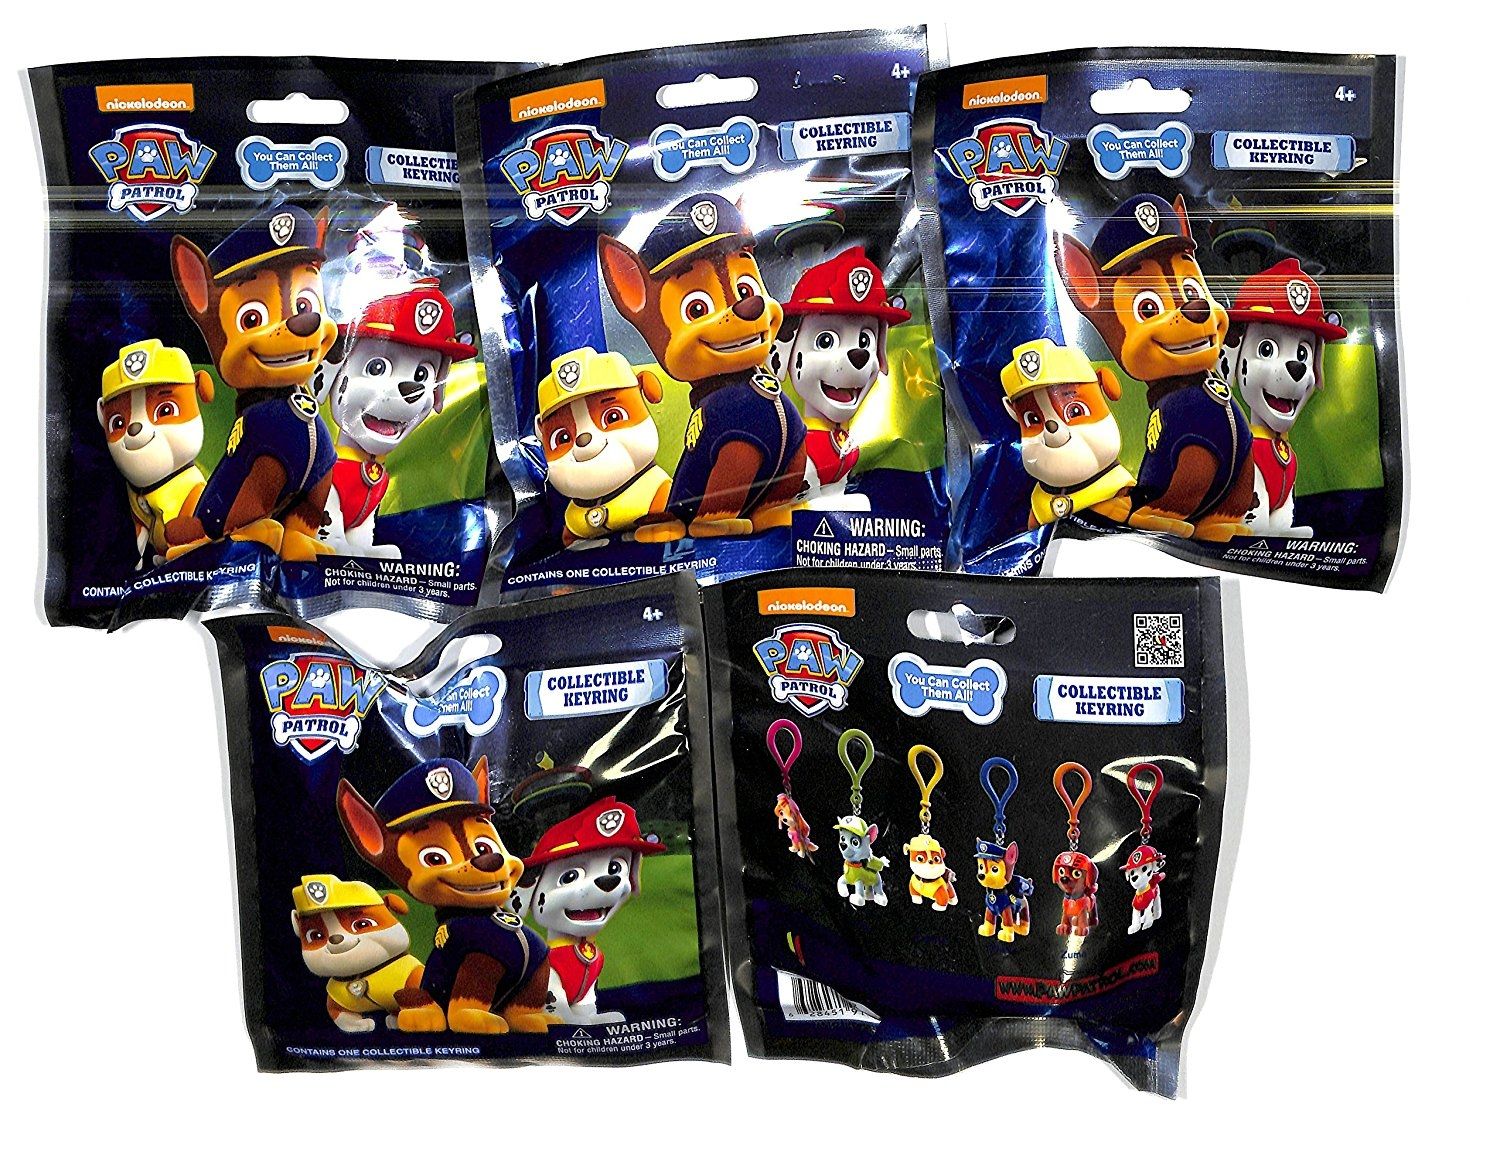 Nickelodeon Paw Patrol Collectible Keyring 5 Blind Packs by a1toys